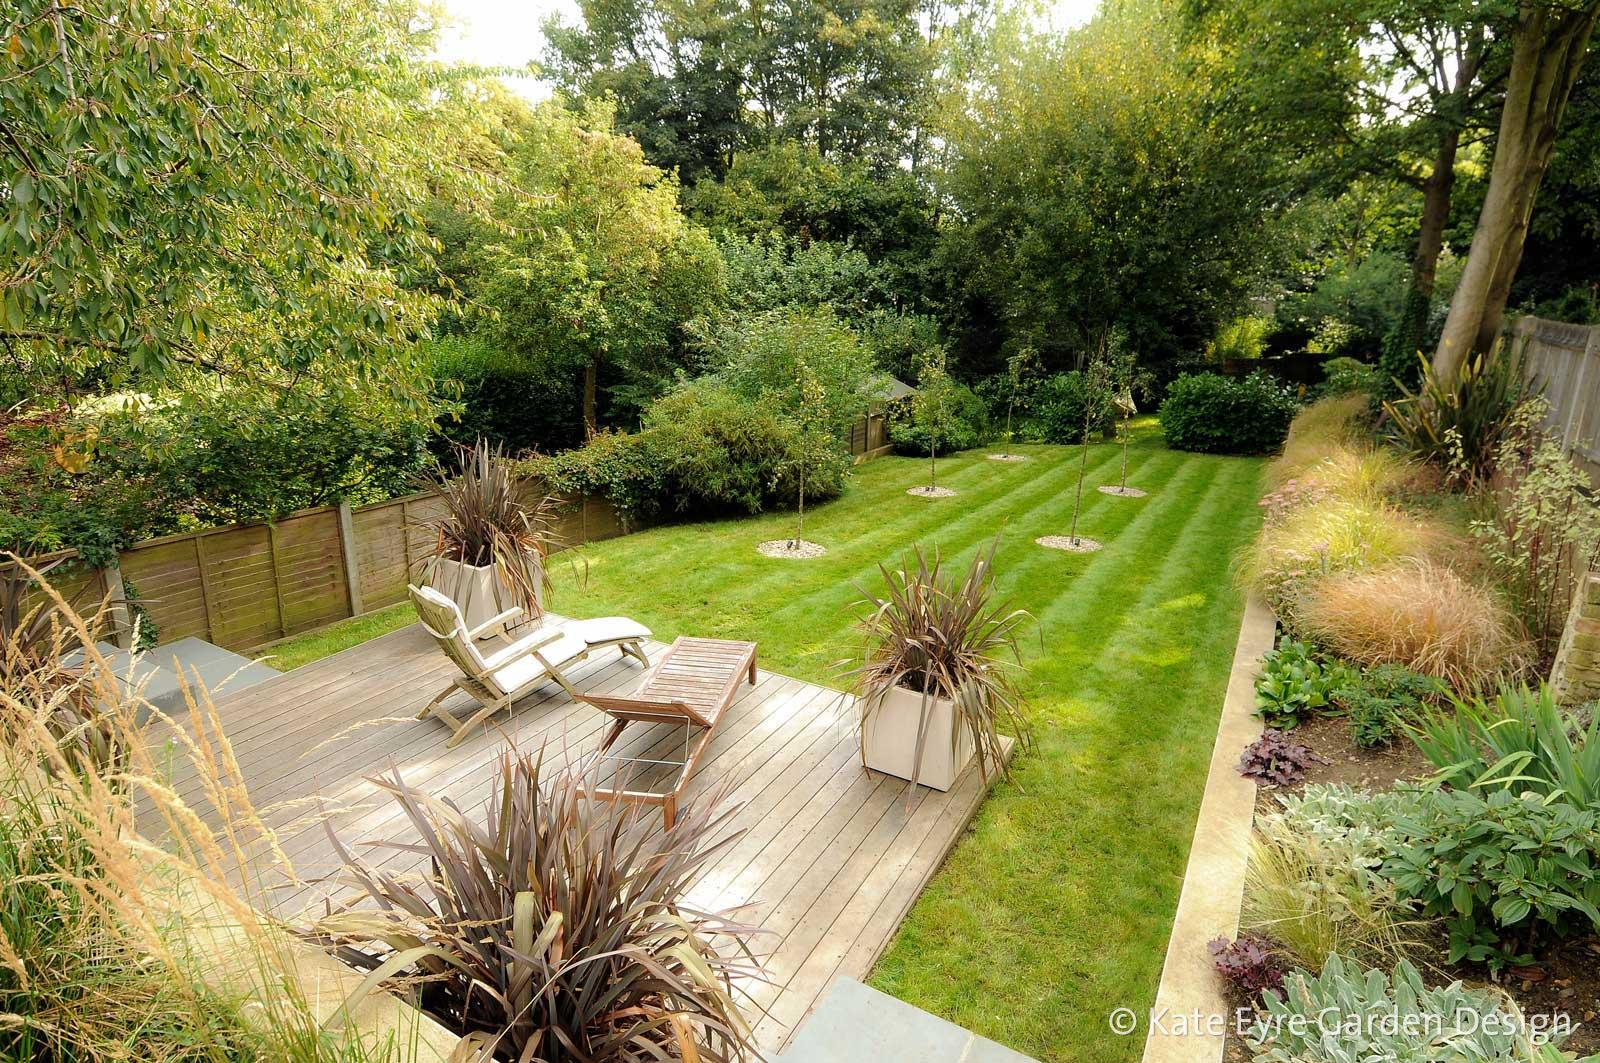 Garden design in crystal palace south east london for Garden design home garden